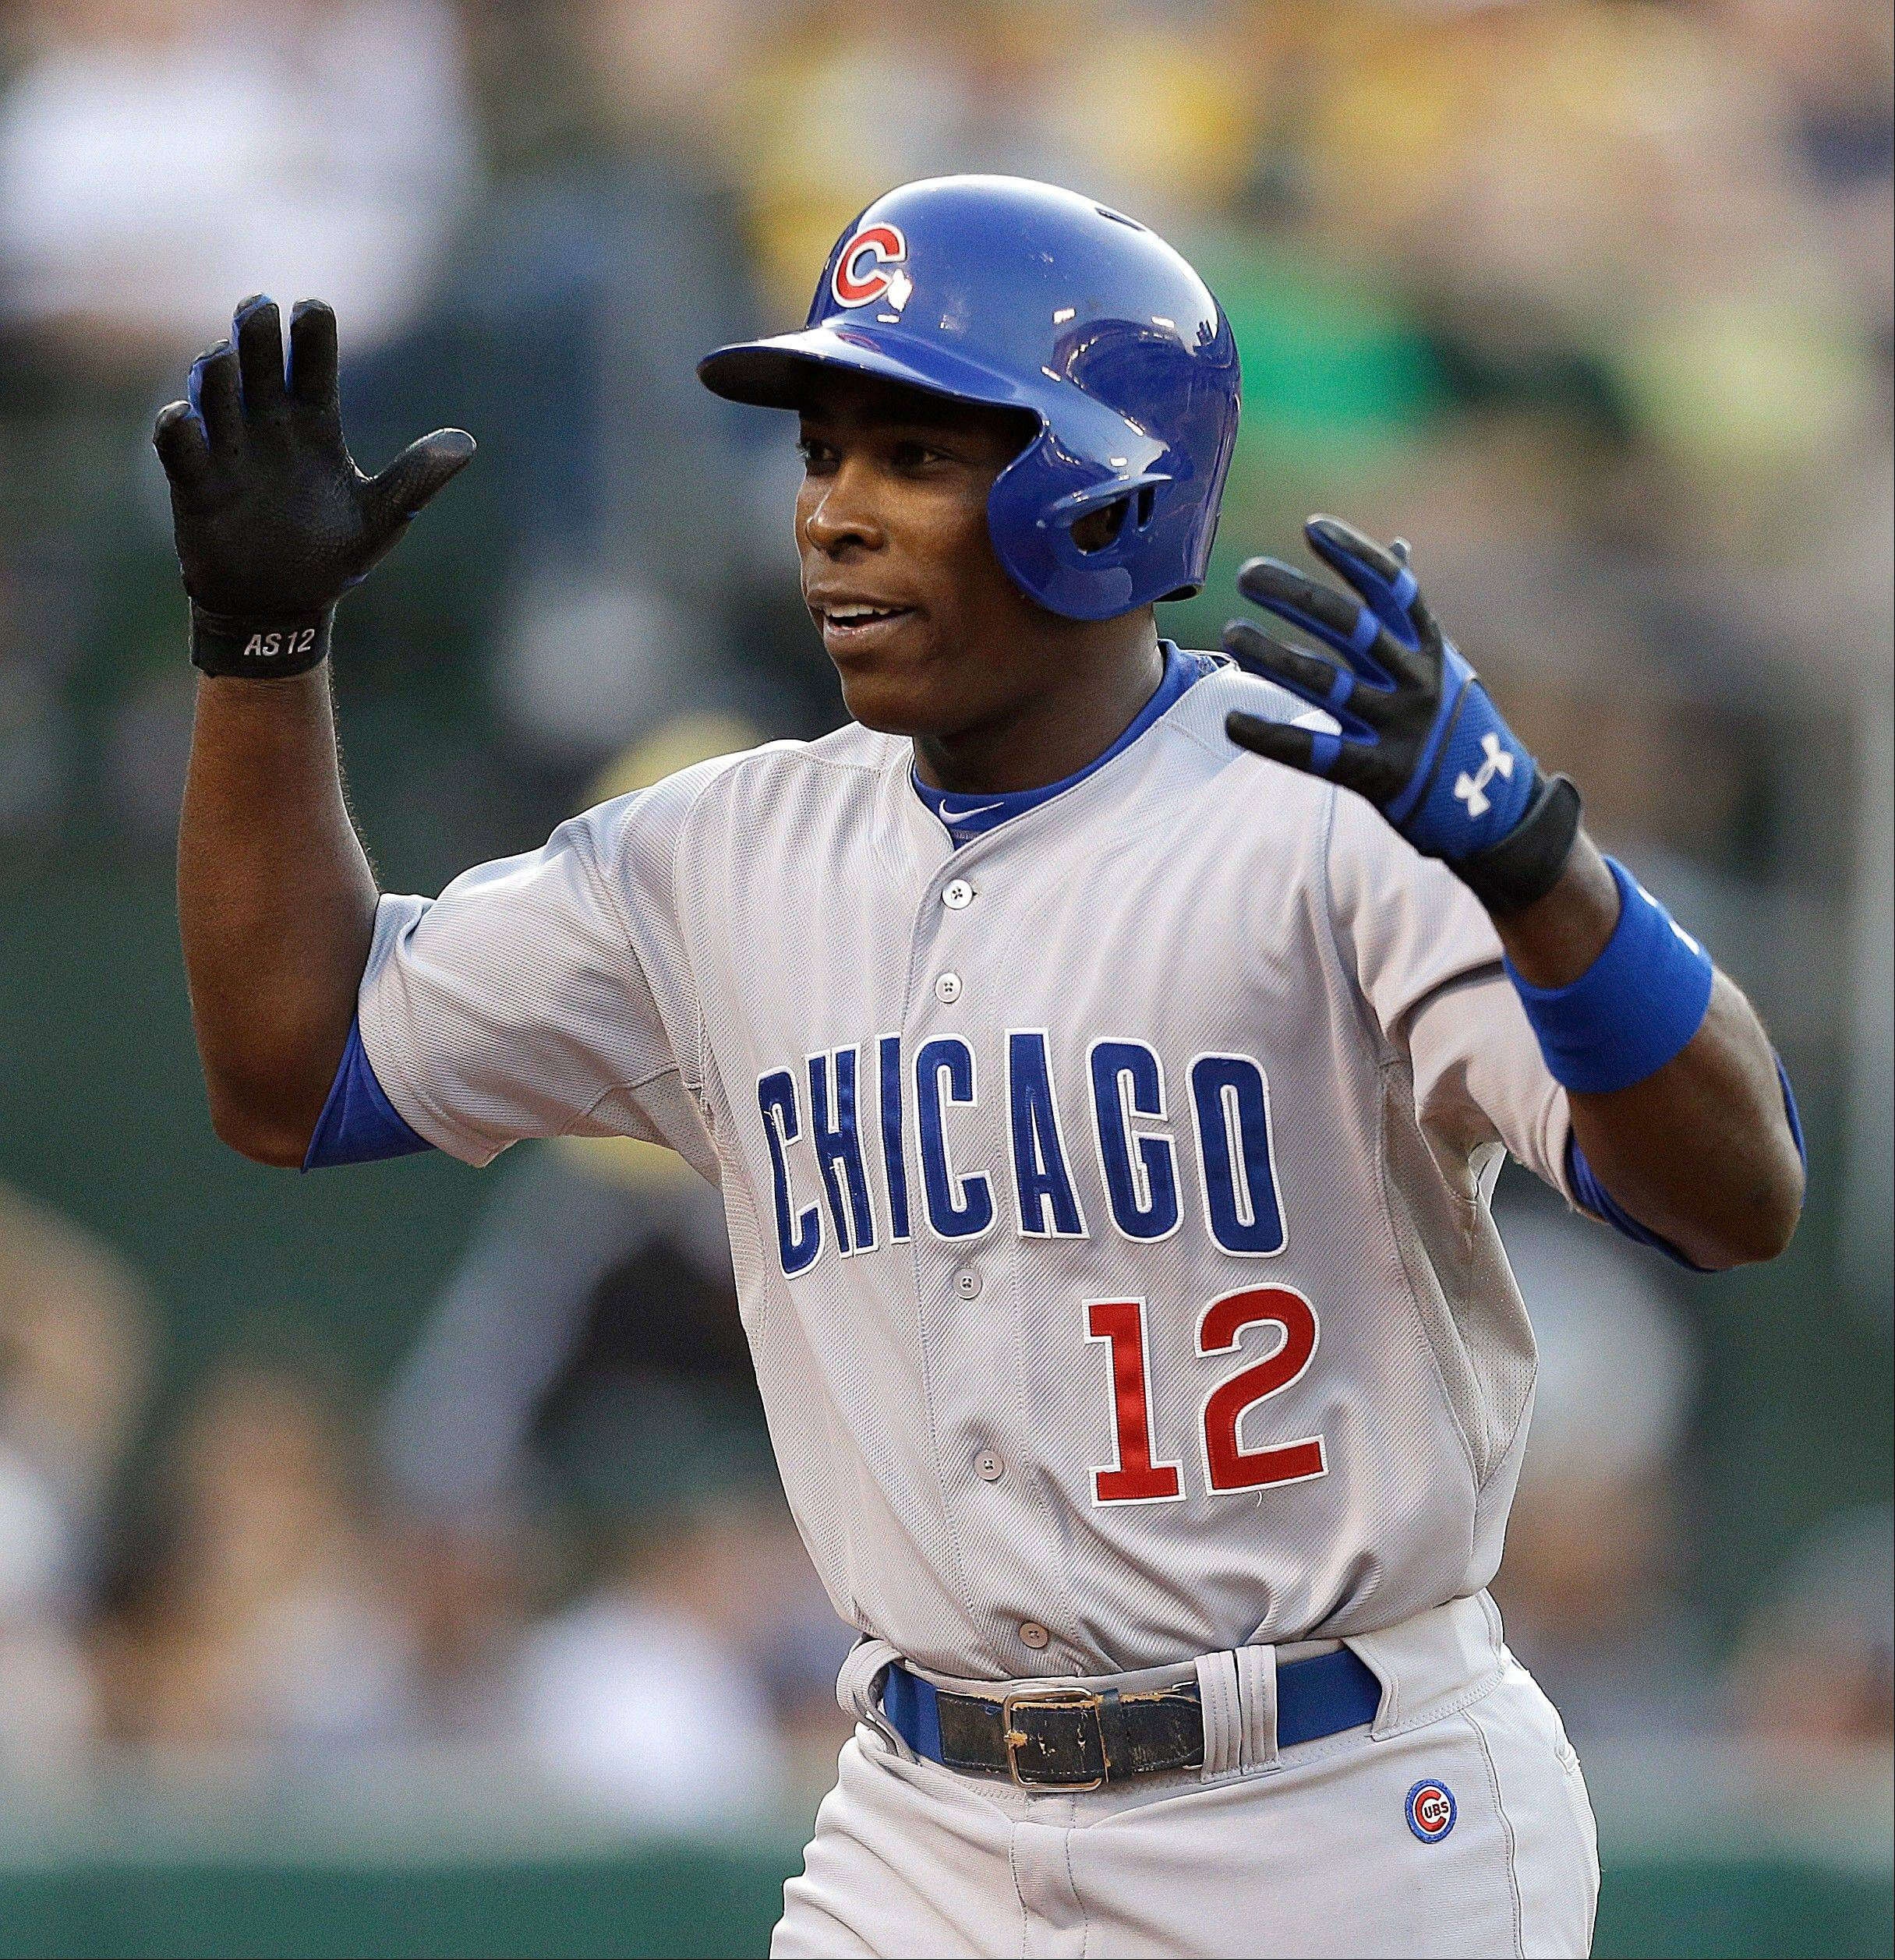 The Cubs' Alfonso Soriano celebrates after hitting a three-run home run off Oakland's A.J. Griffin in the fourth inning Tuesday night.